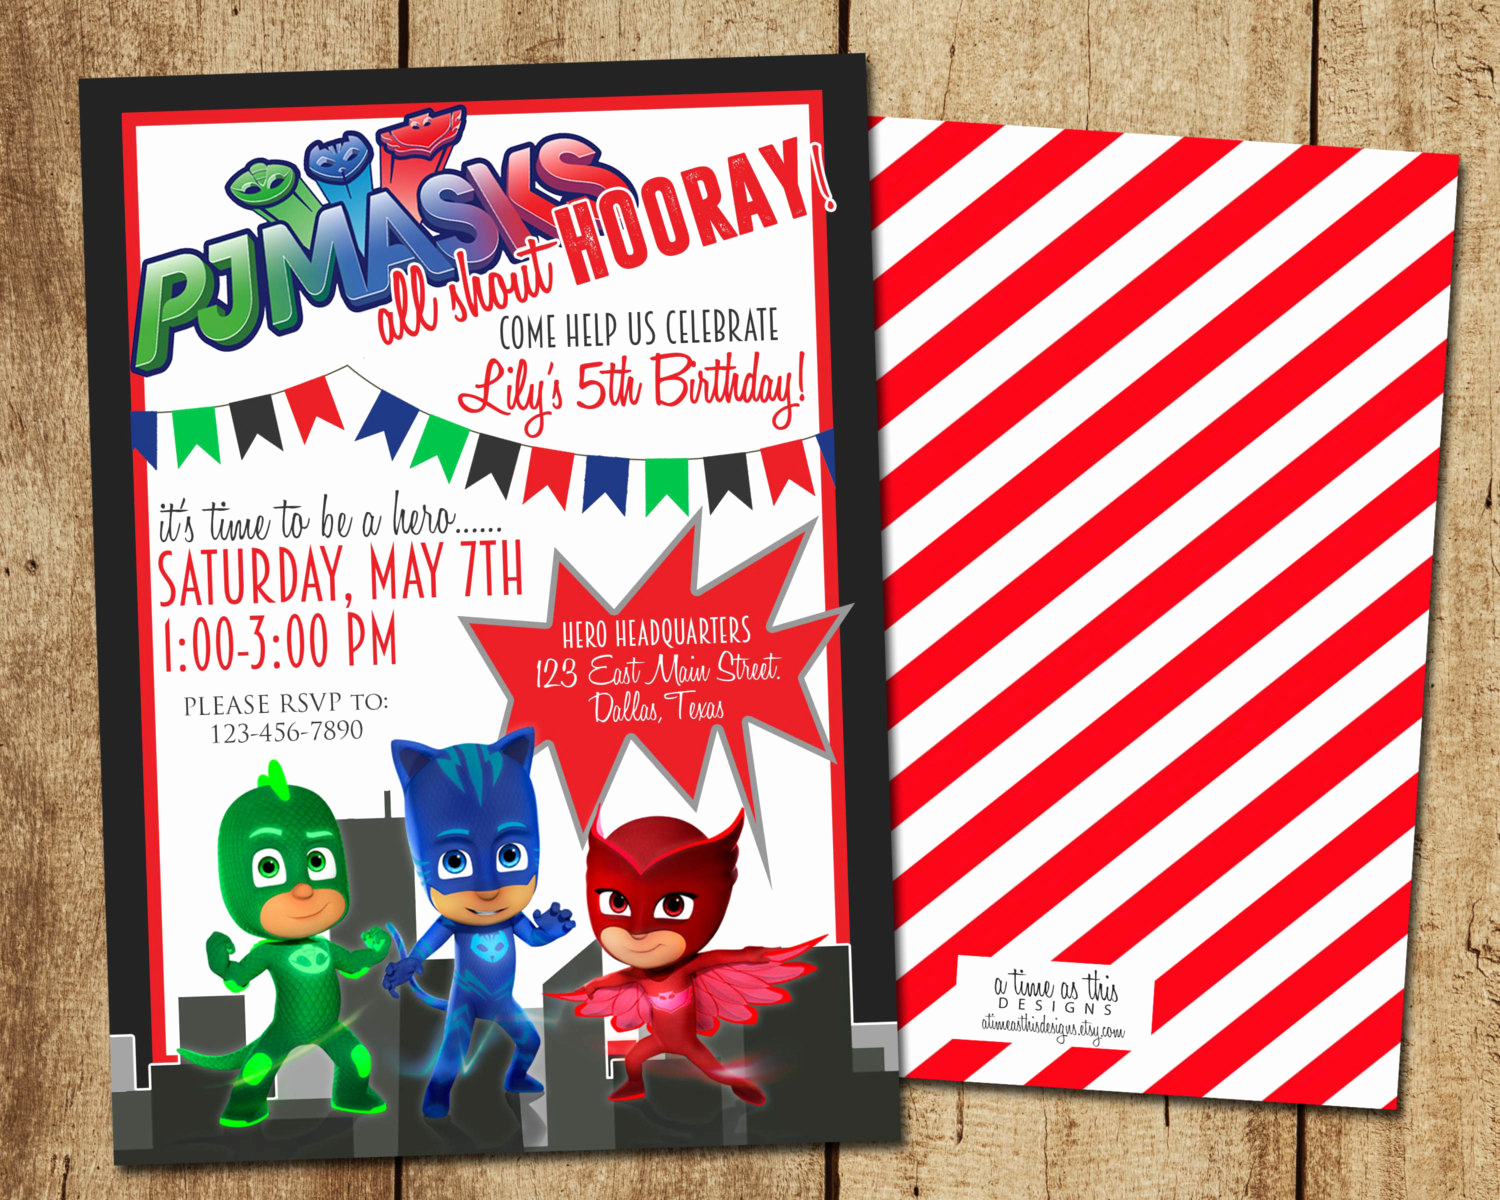 Pj Mask Invitation Template Fresh Pj Masks Birthday Invitation Digital Printable Pj Masks